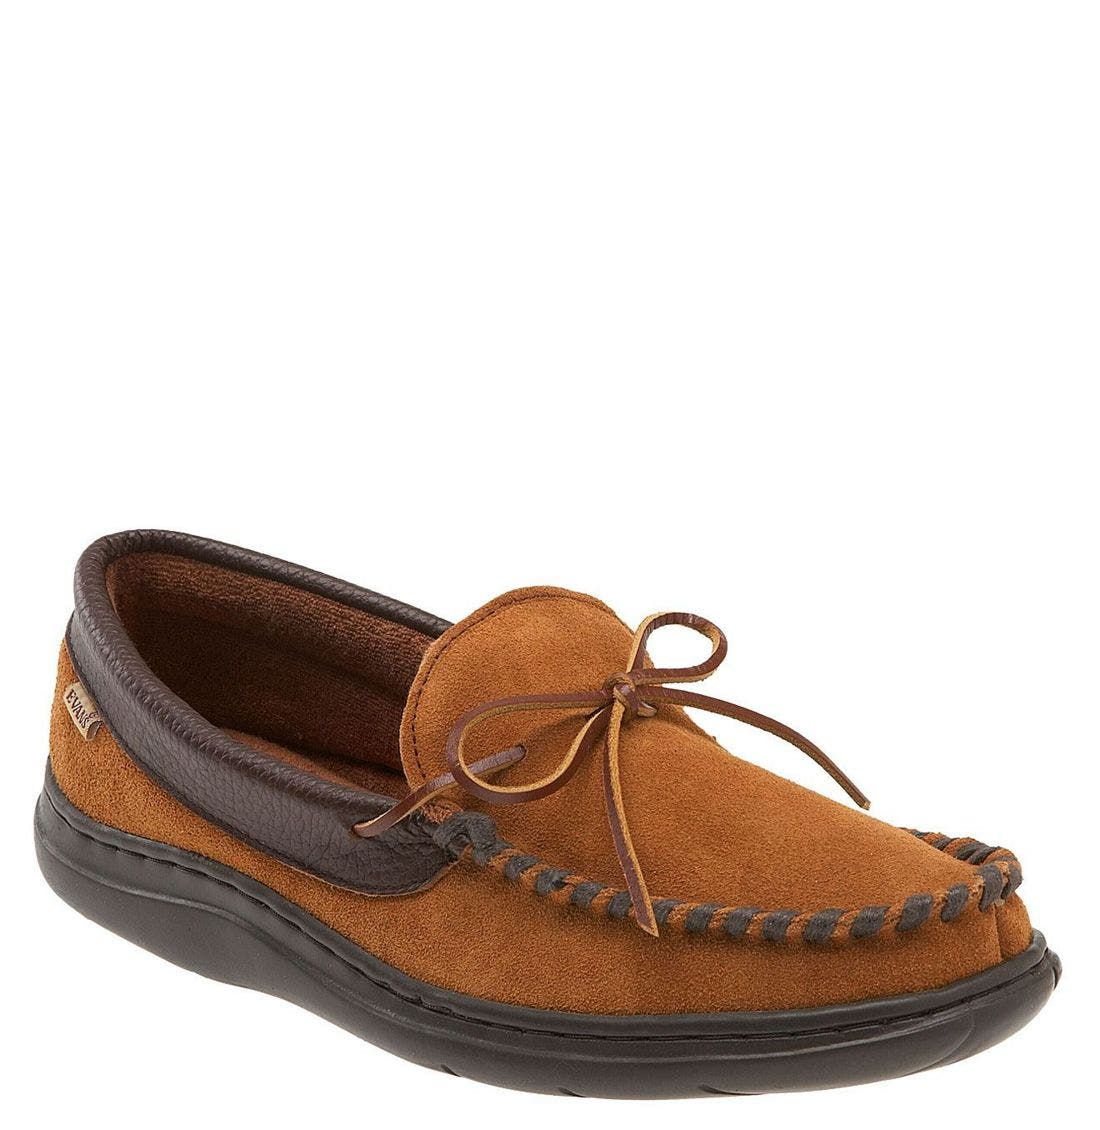 'Atlin' Moccasin,                         Main,                         color, Saddle/ Terry